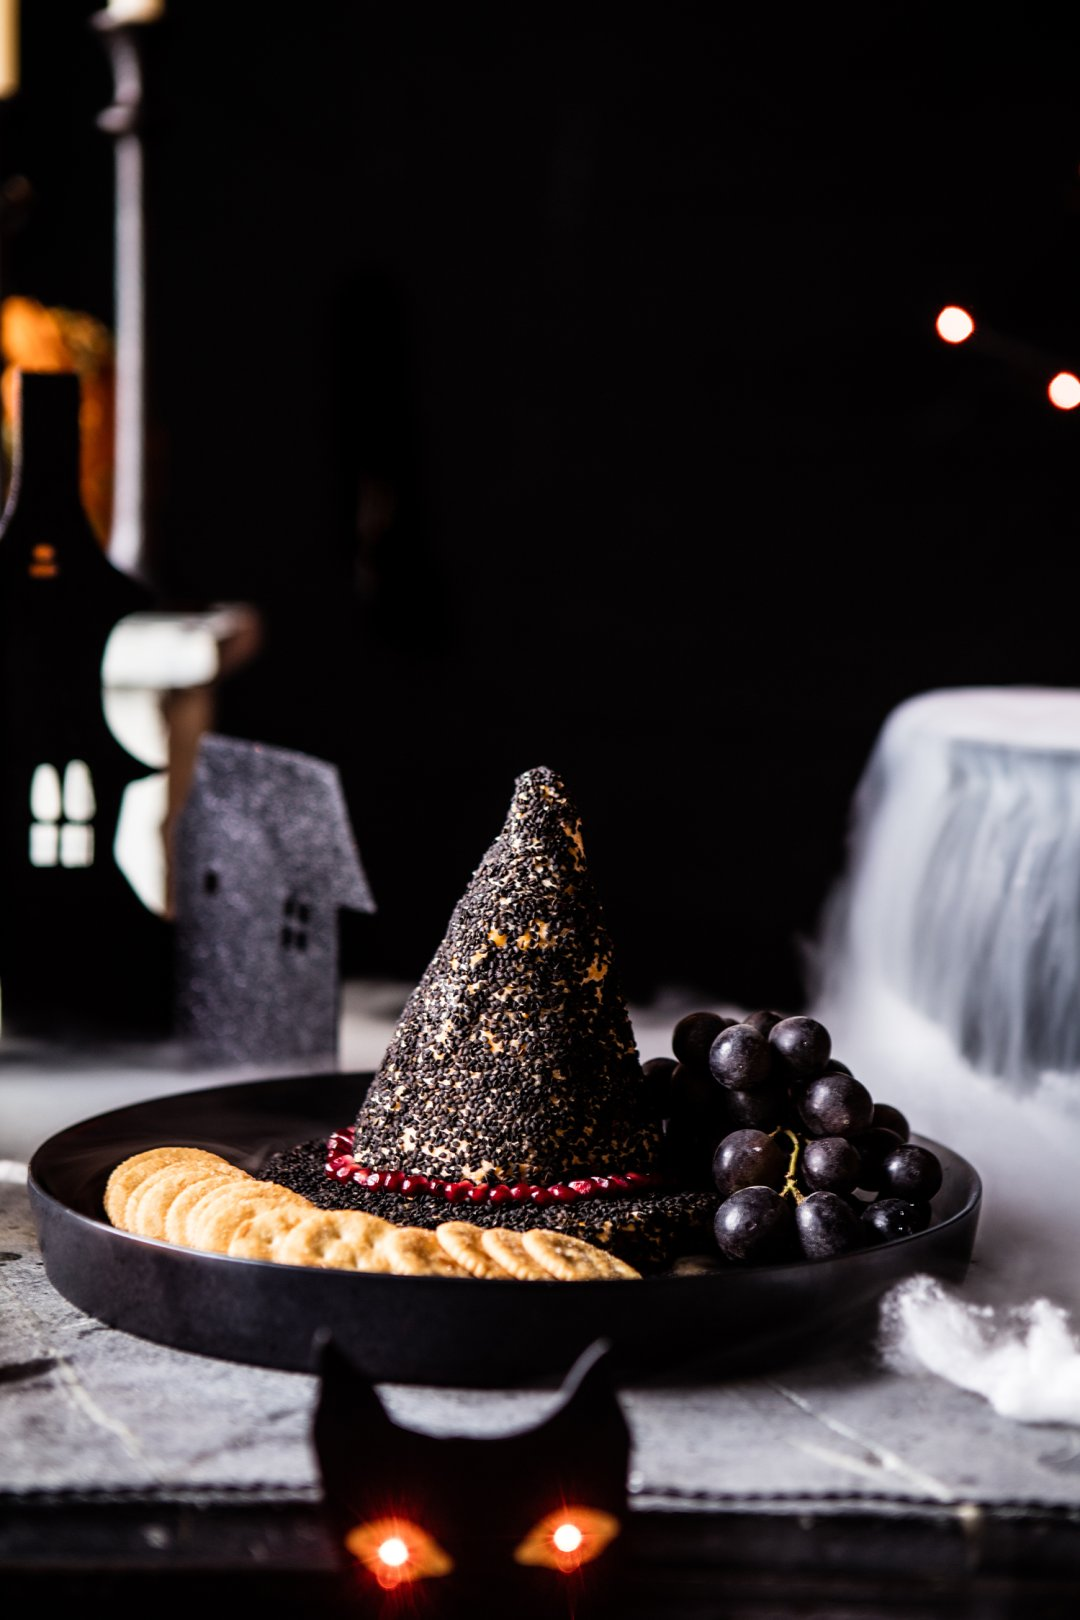 Black serving tray with cheese dip in the shape of a witch's hat surrounded by crackers, grapes and other snacks